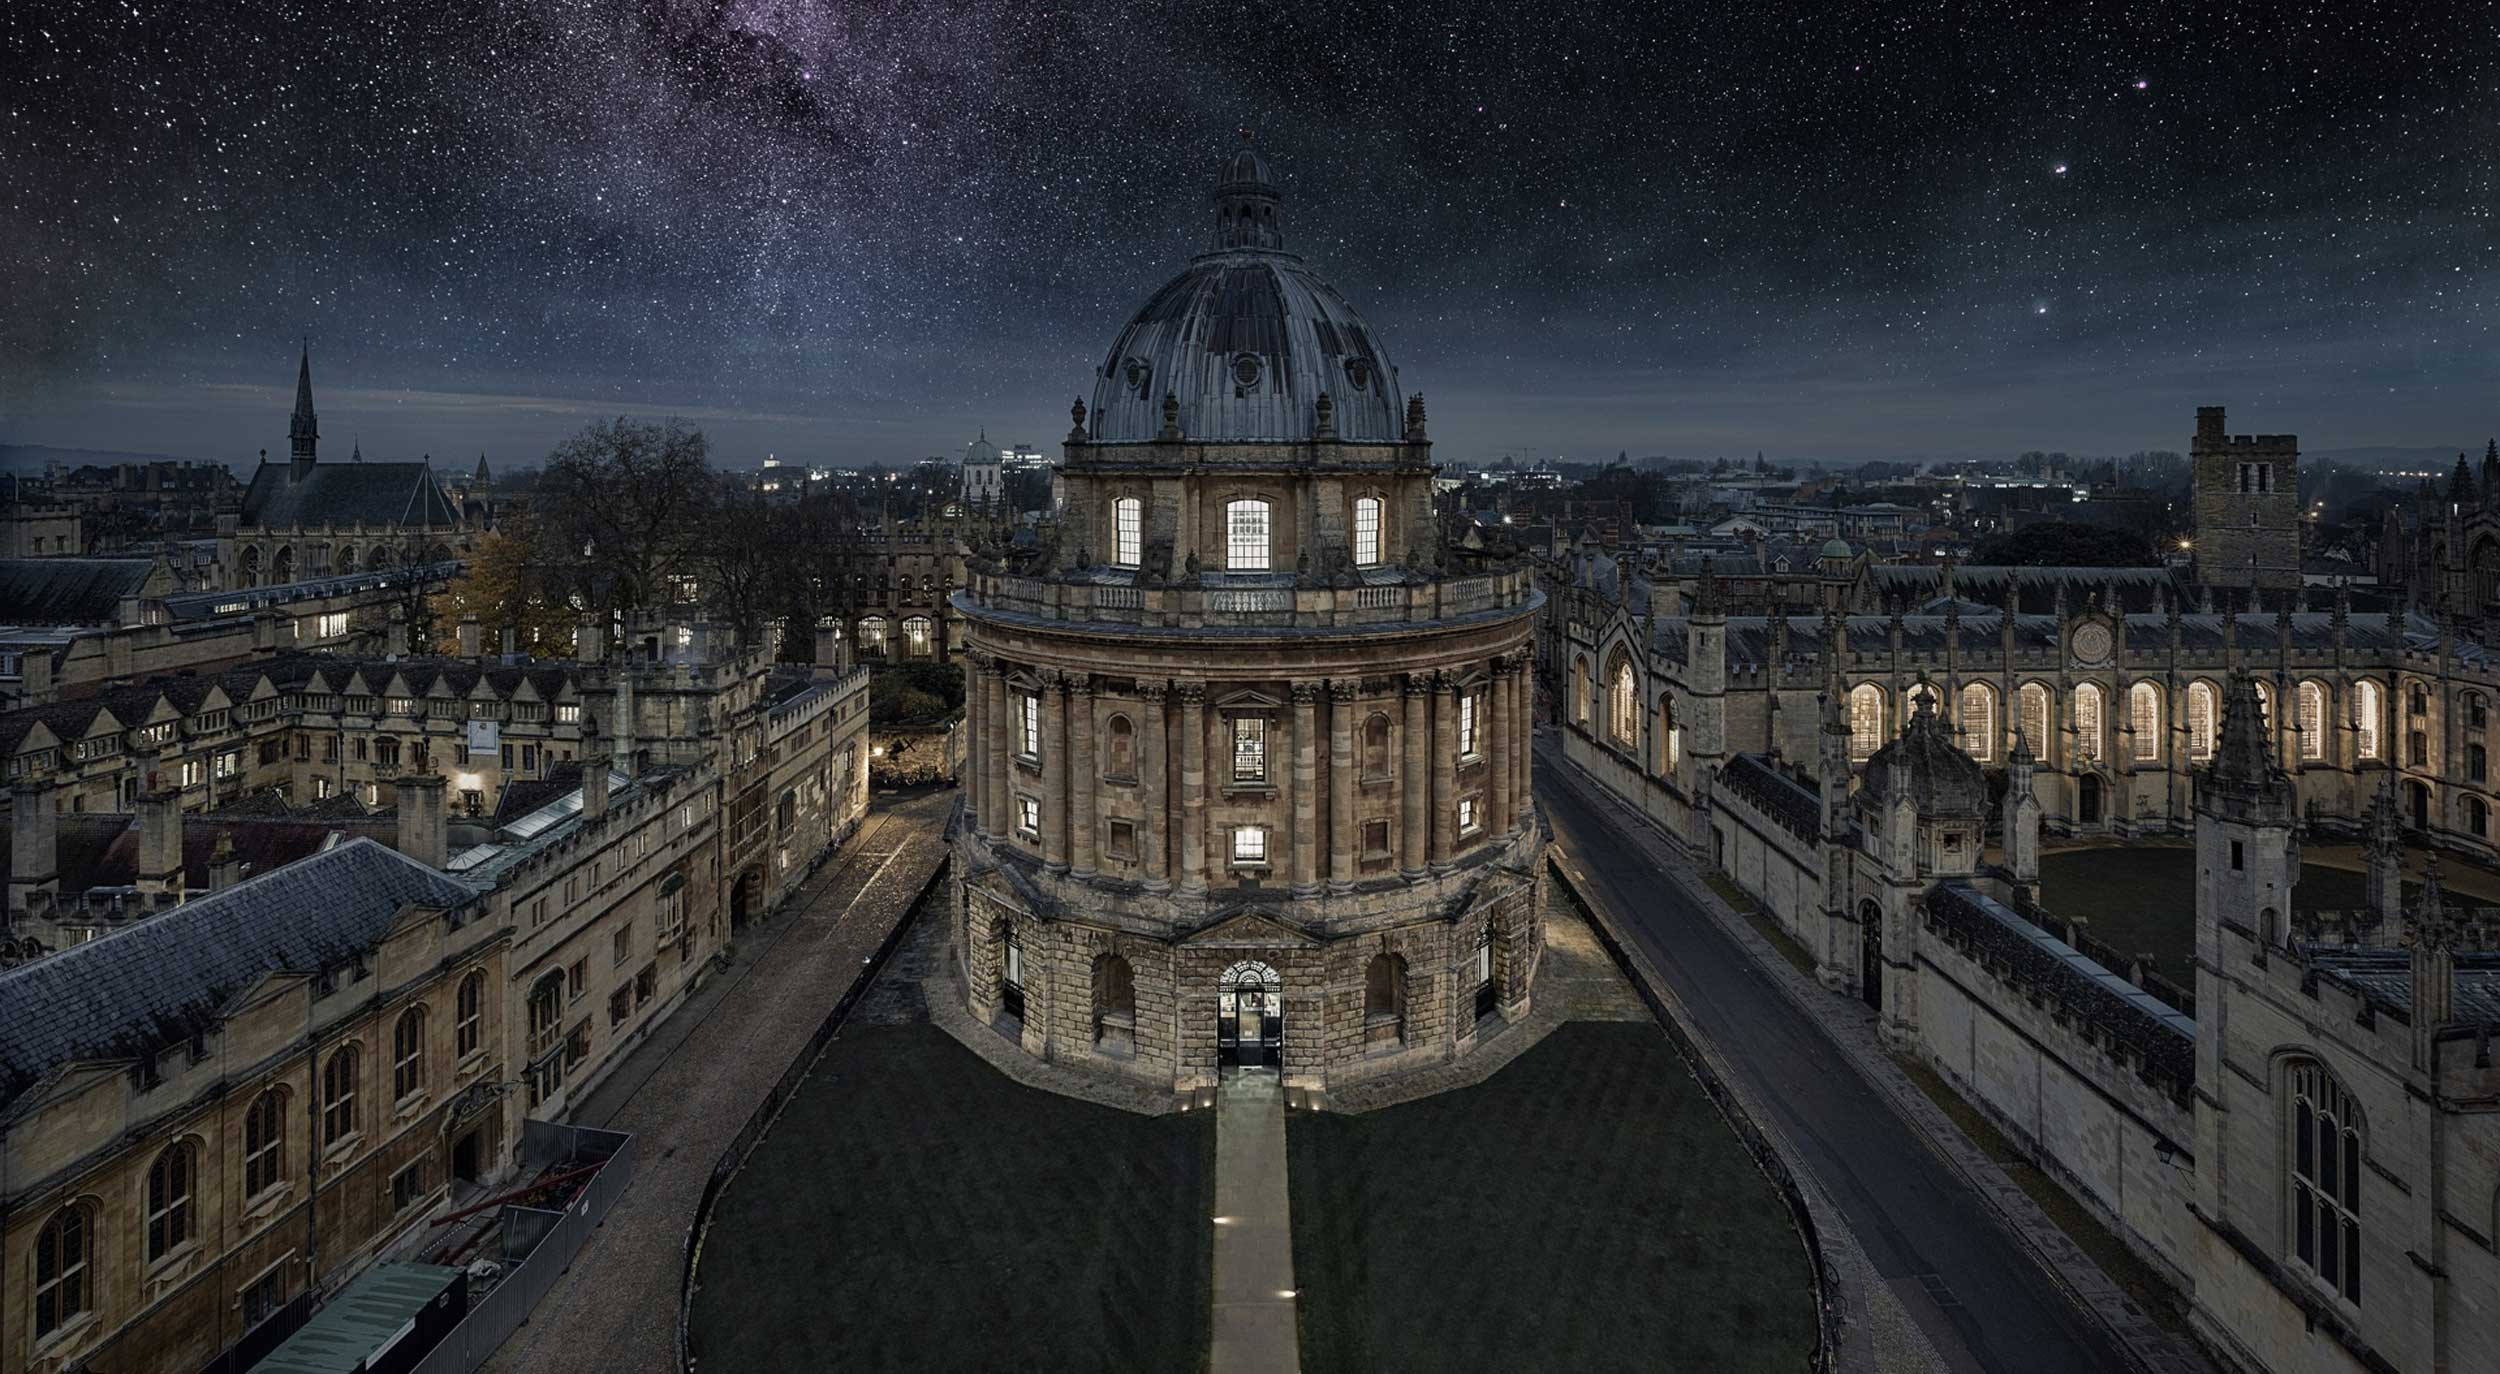 Radcliffe Camera, Oxford, by night